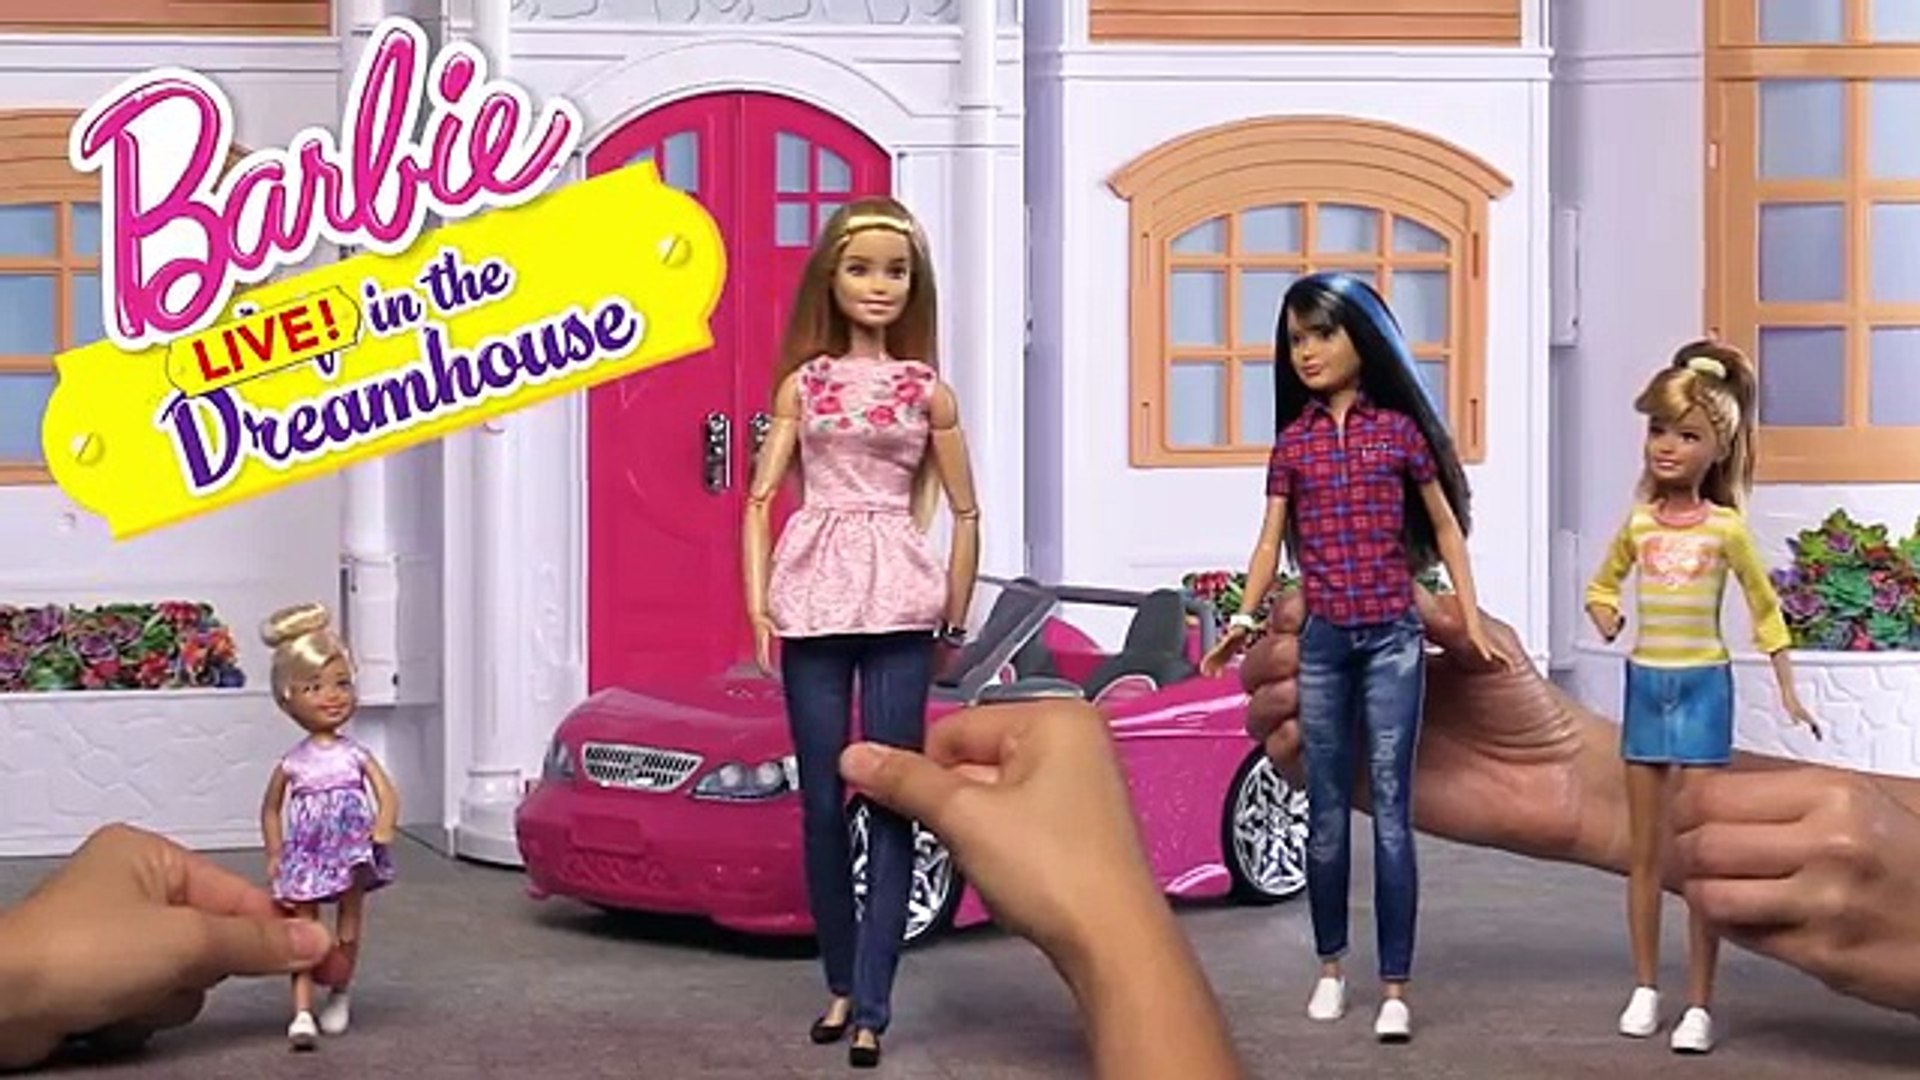 Doctor Barbie | Barbie LIVE! in the Dreamhouse | Barbie